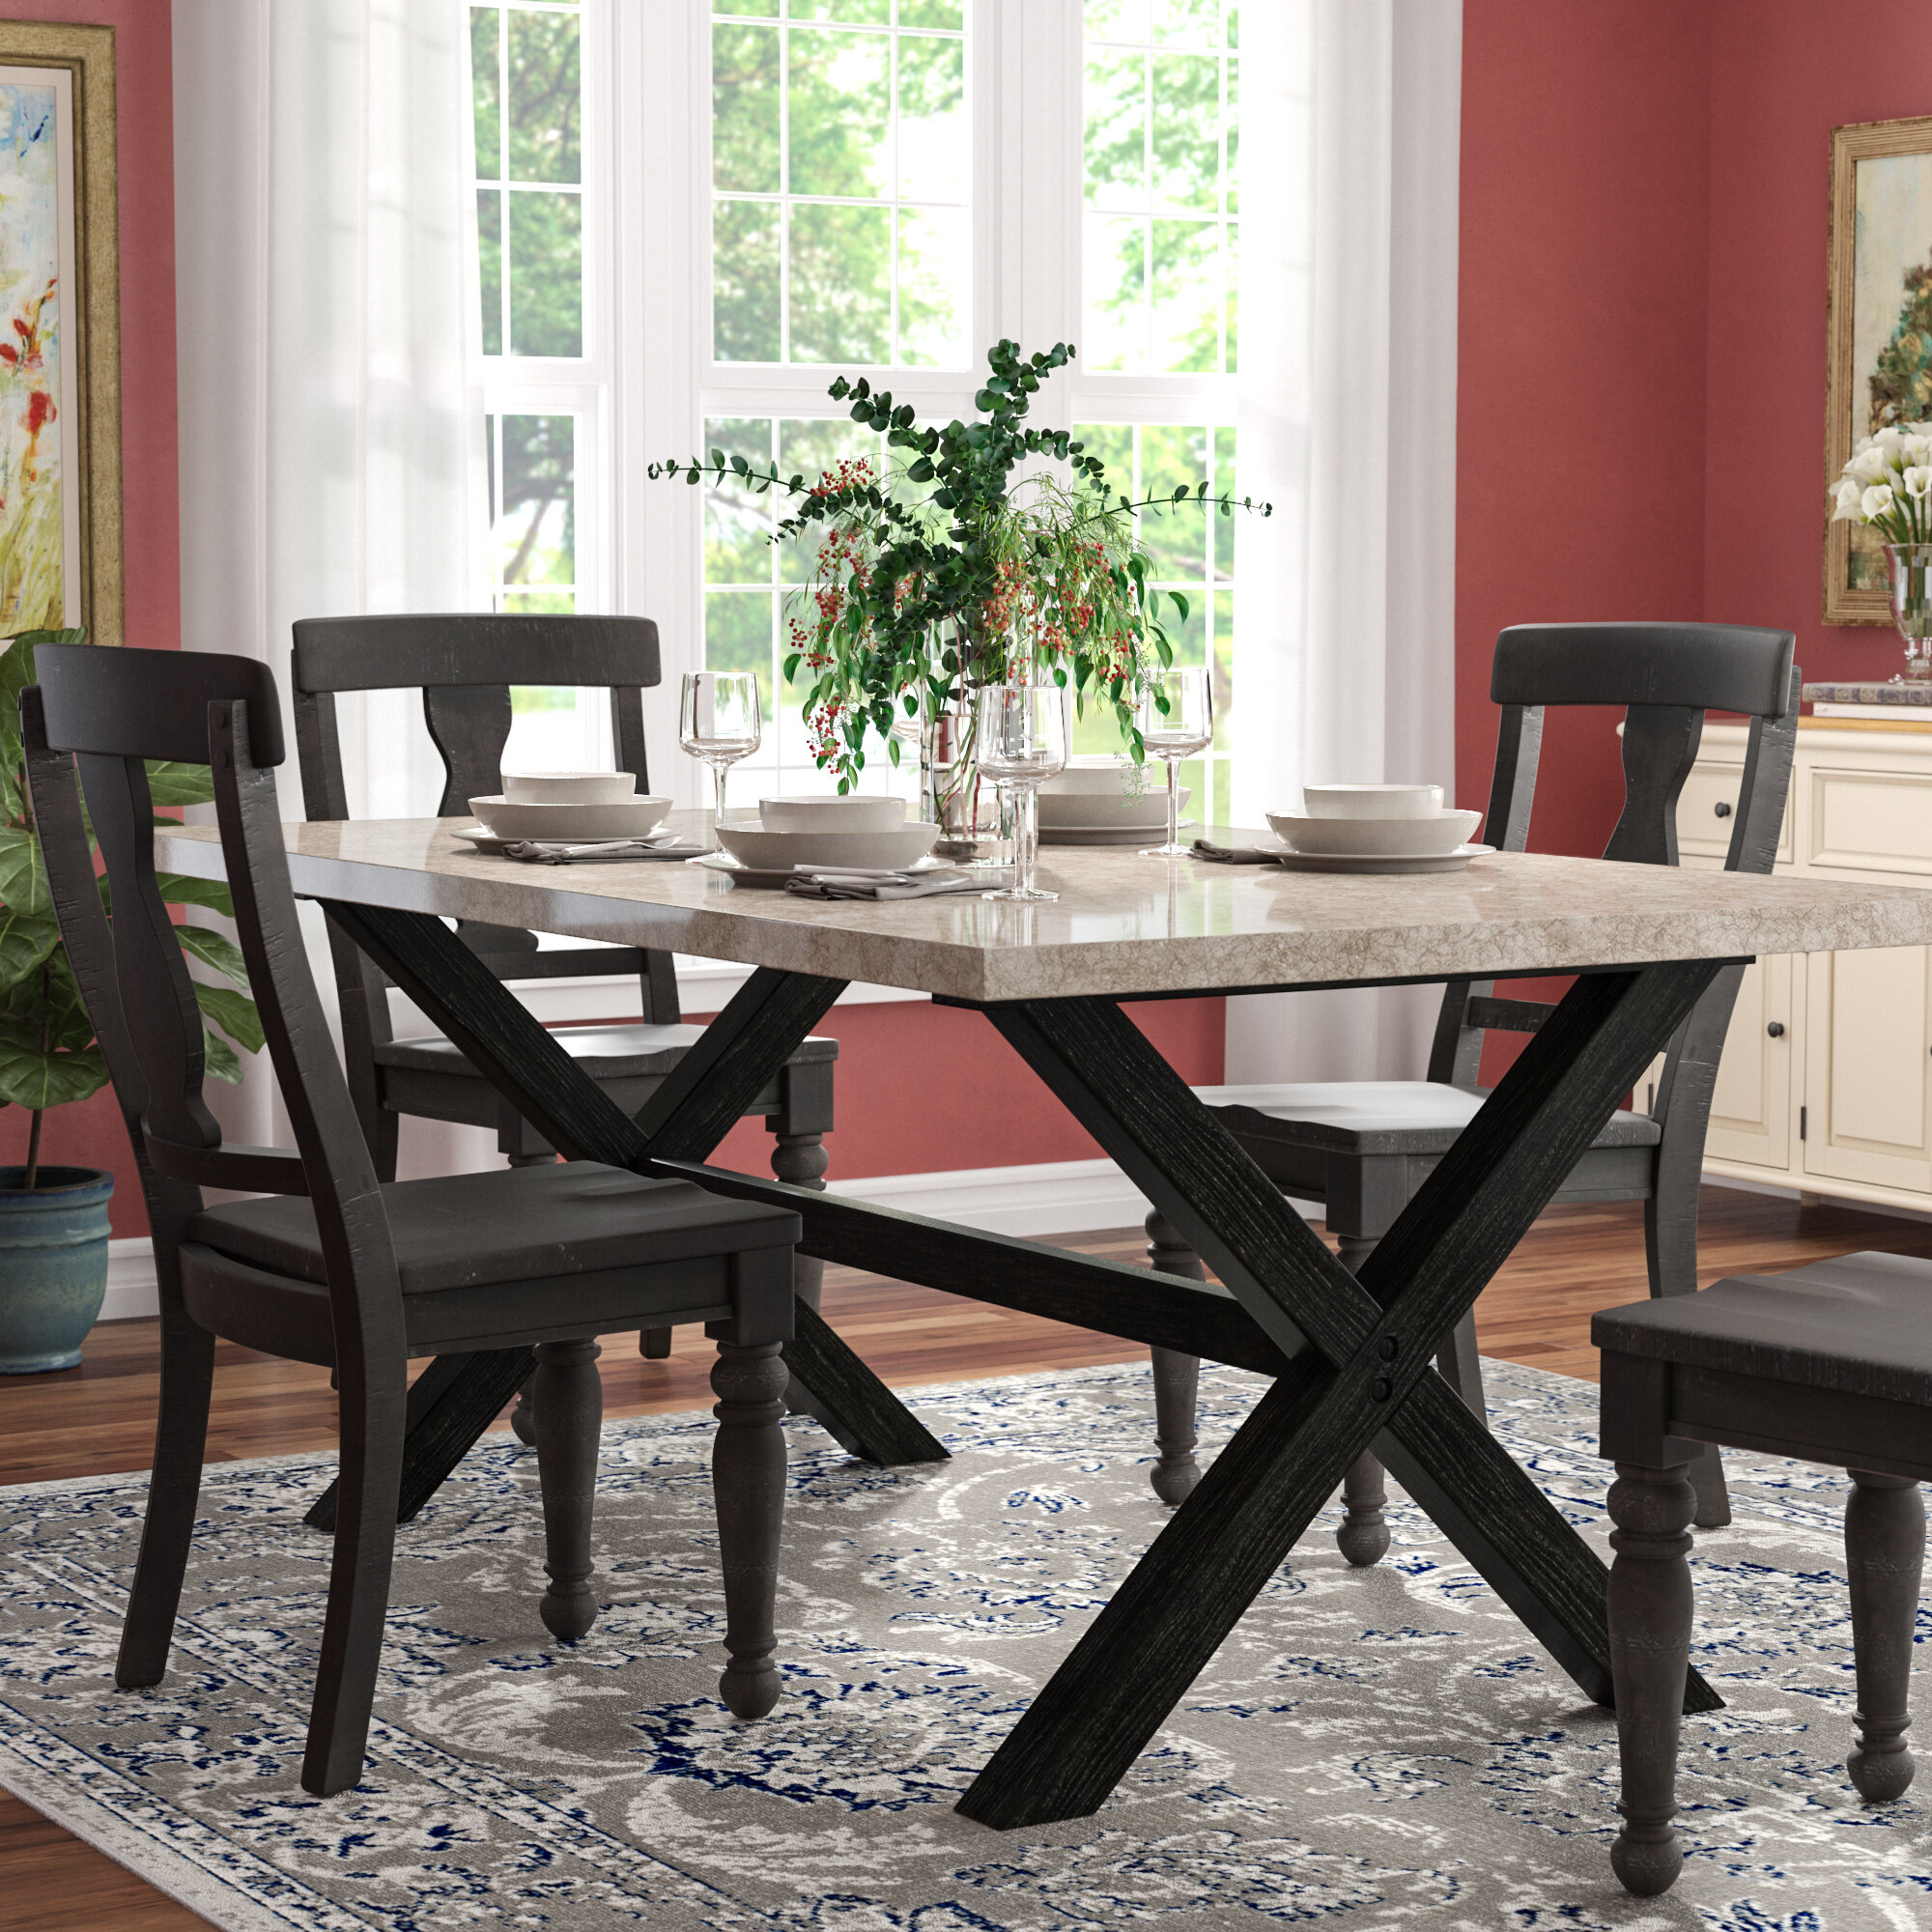 Red Barrel Studio Coleville Solid Wood Dining Table Reviews Wayfair